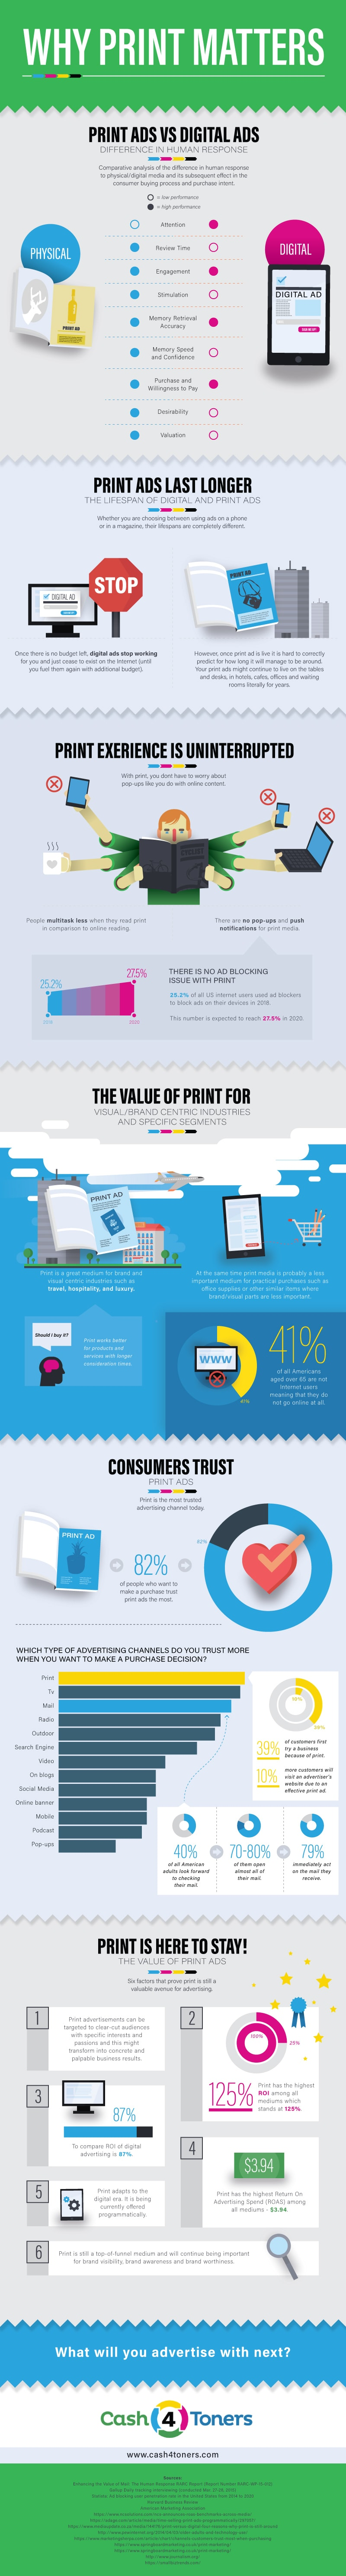 Why Print Matters [INFOGRAPHIC] by Cash4Toners